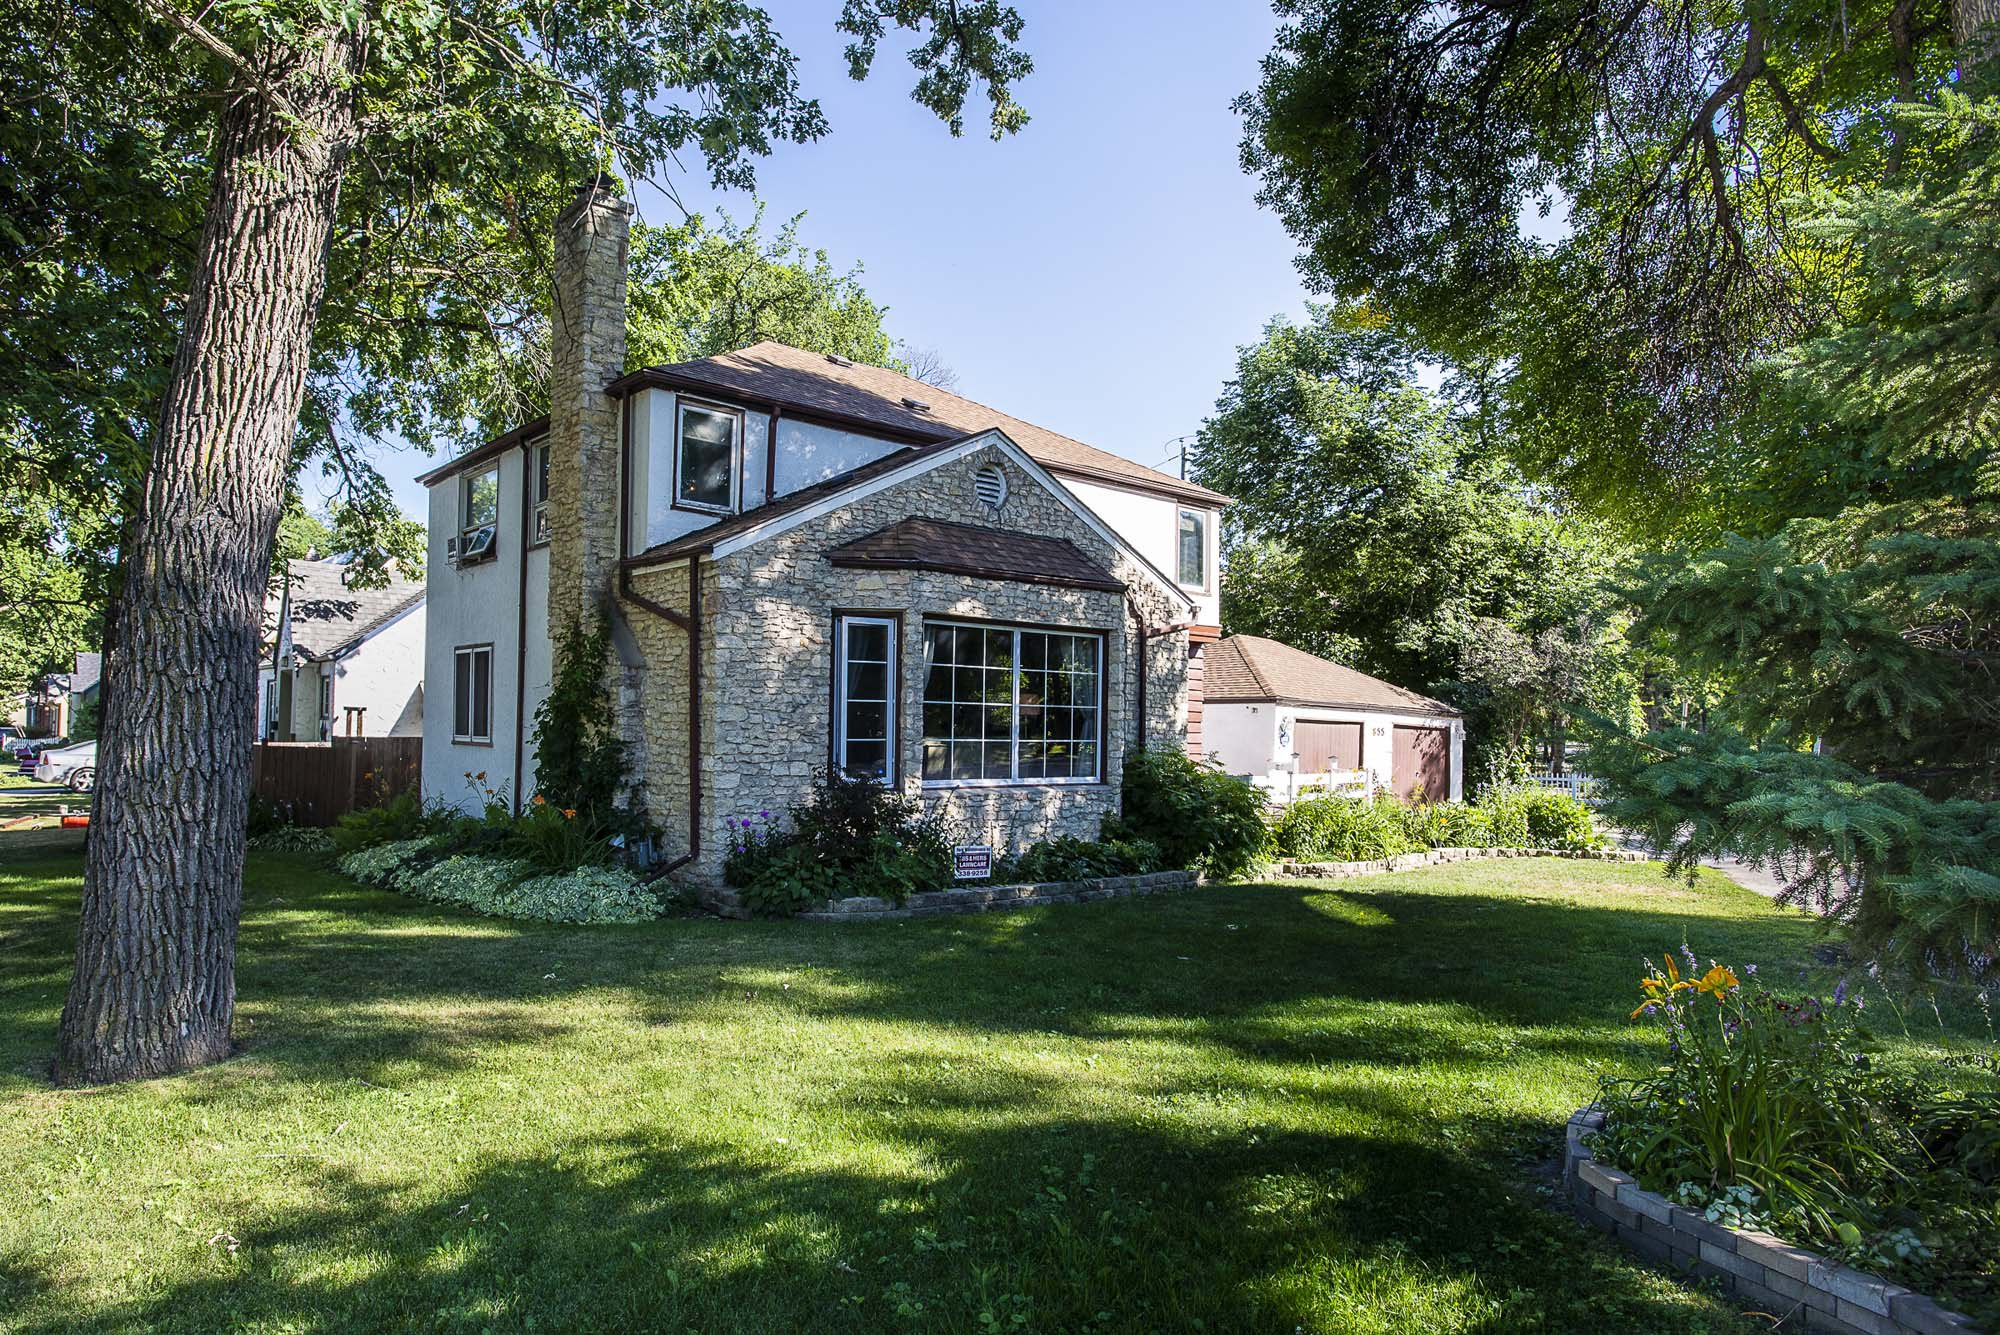 Main Photo: 855 Kildonan Drive in Winnipeg: Fraser's Grove Residential for sale (3C)  : MLS®# 202018504